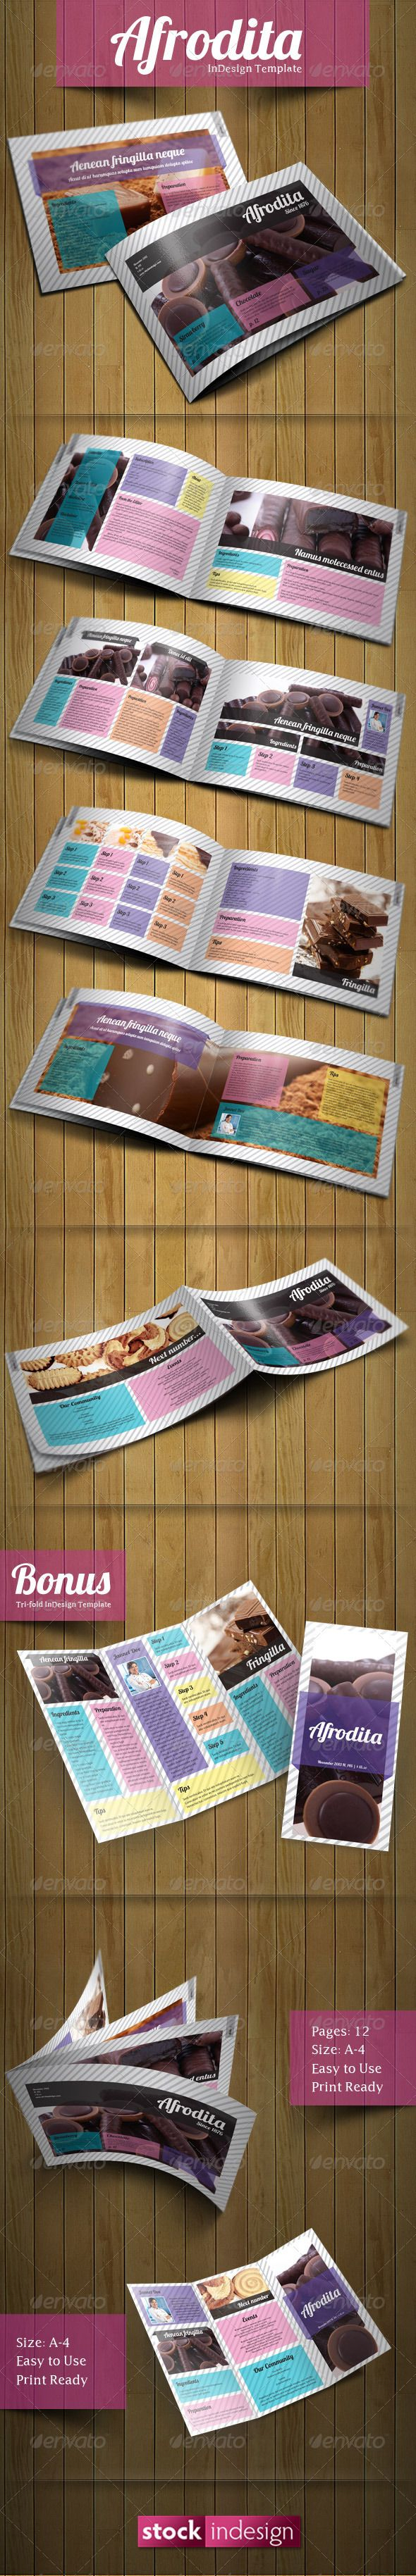 Afrodita Brochure: Modern & Clean  #GraphicRiver        Features  Size: 29.7cm x 21cm 12 pages 2 Master Pages Easy to Use Print Ready BONUS = Tri-fold InDesign Template        Created: 31January12 GraphicsFilesIncluded: InDesignINDD #AIIllustrator Layered: Yes MinimumAdobeCSVersion: CS4 PrintDimensions: 11.69x8.27 Tags: brochuretemplate #clean #creative #elegant #indesigntemplate #modern